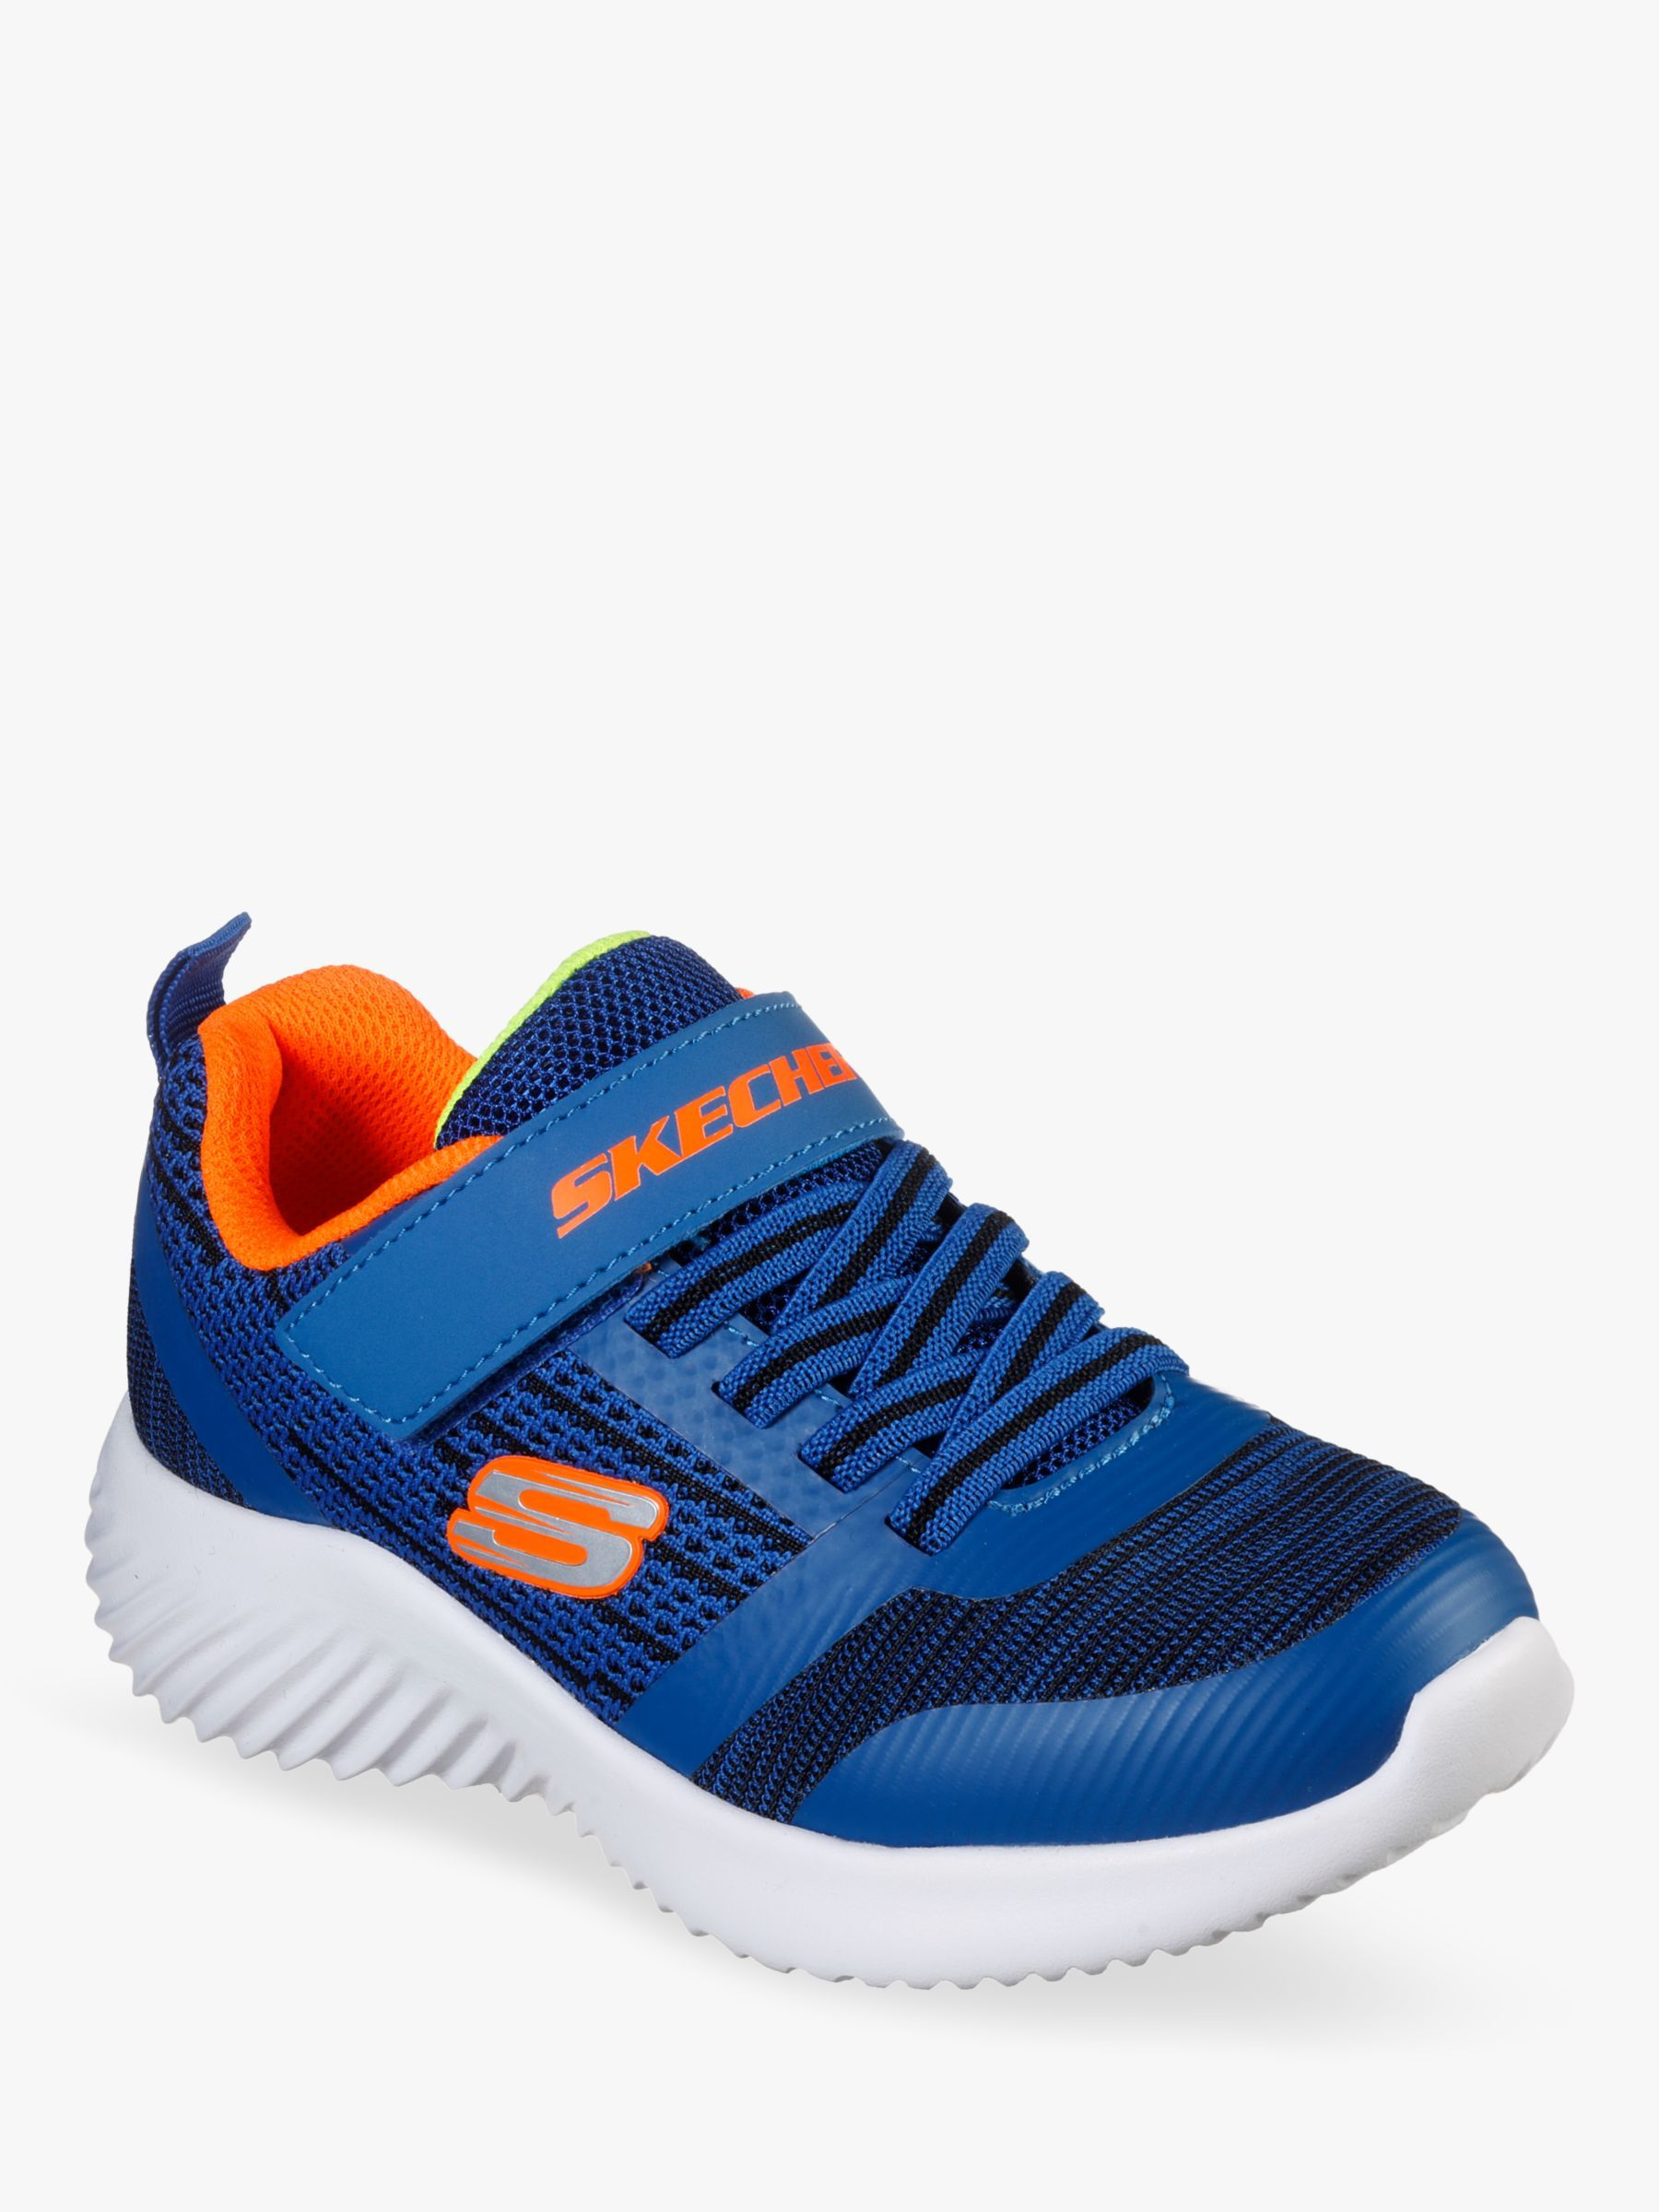 Bounder Zallow Trainers, Blue/Black